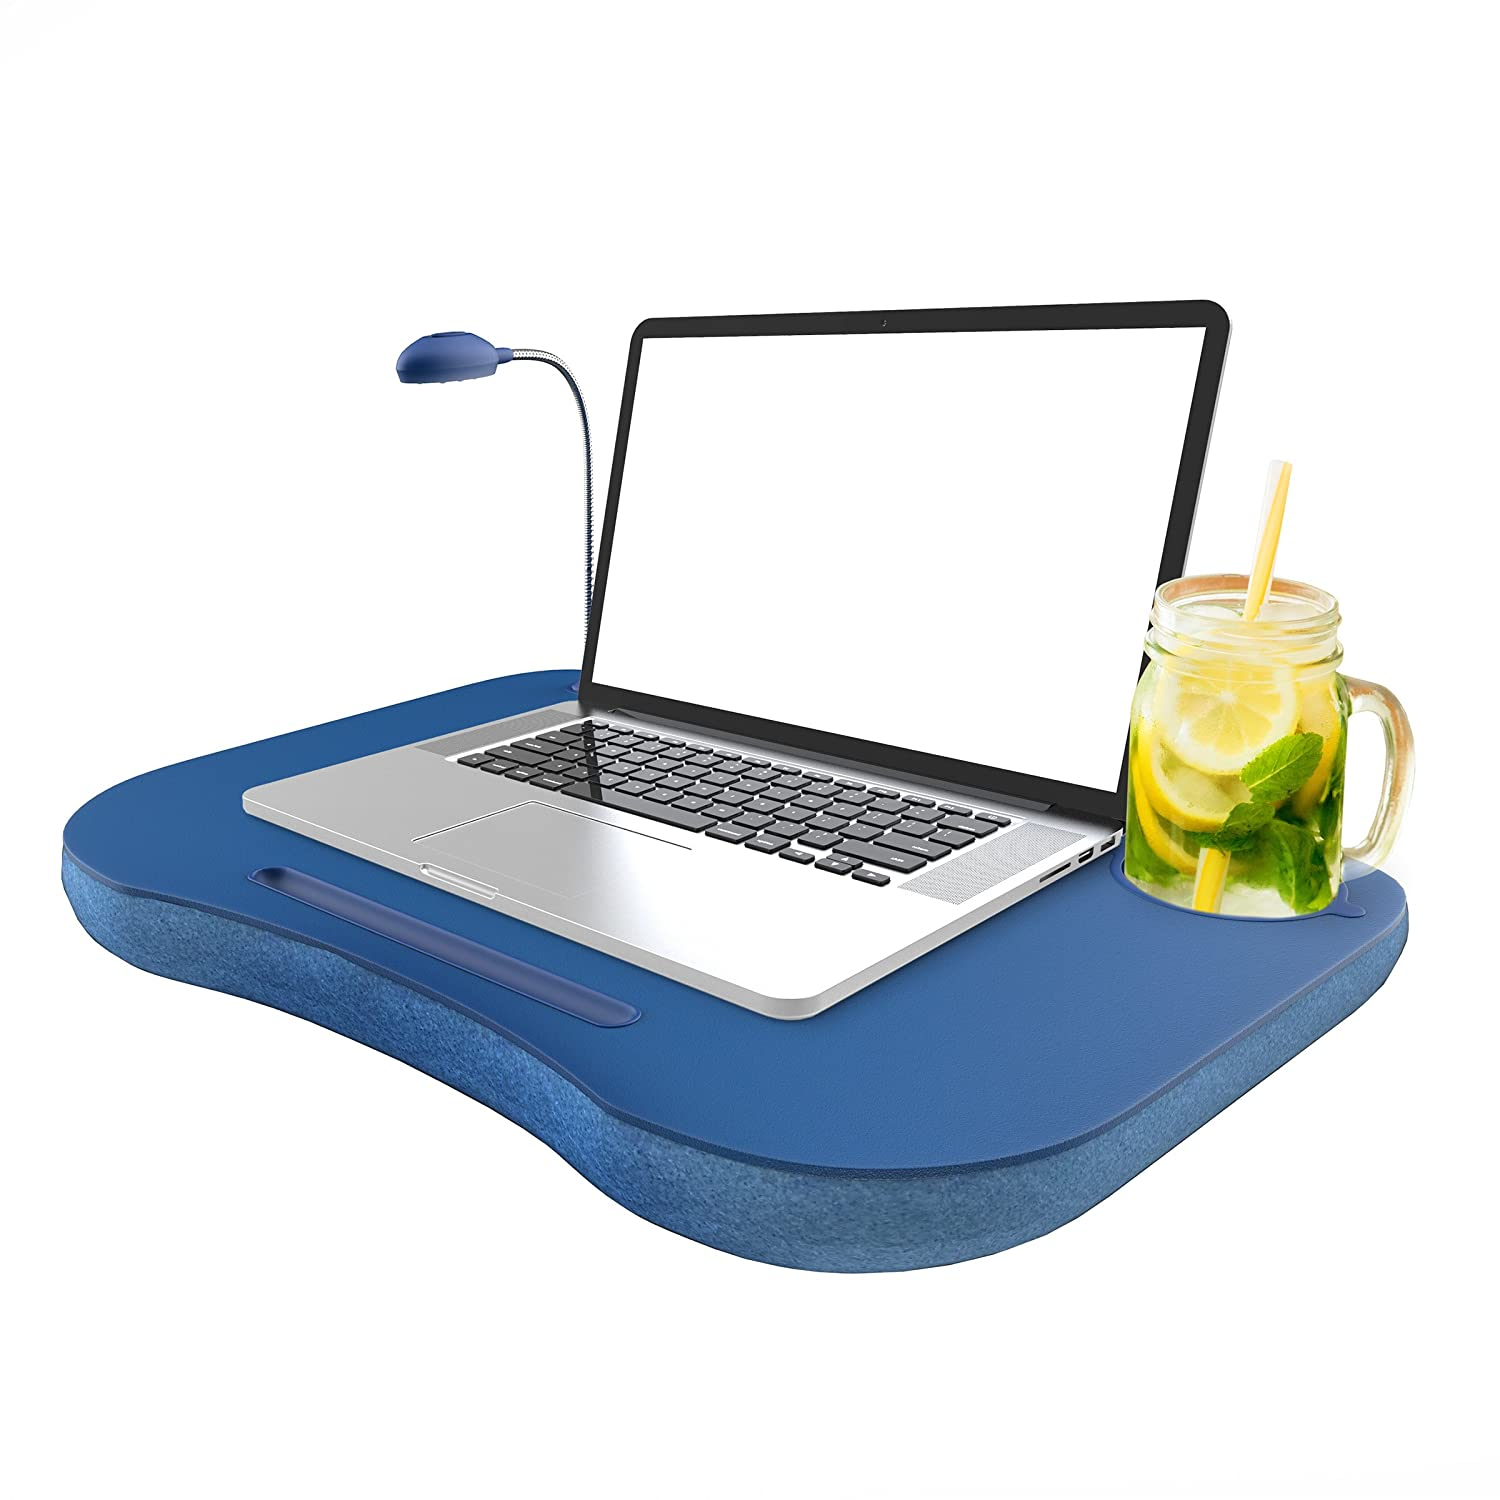 Swell Laptop Lap Desk Portable With Foam Filled Fleece Cushion Led Desk Light Cup Holder For Homework Drawing Reading And More By Lavish Home Blue Interior Design Ideas Truasarkarijobsexamcom